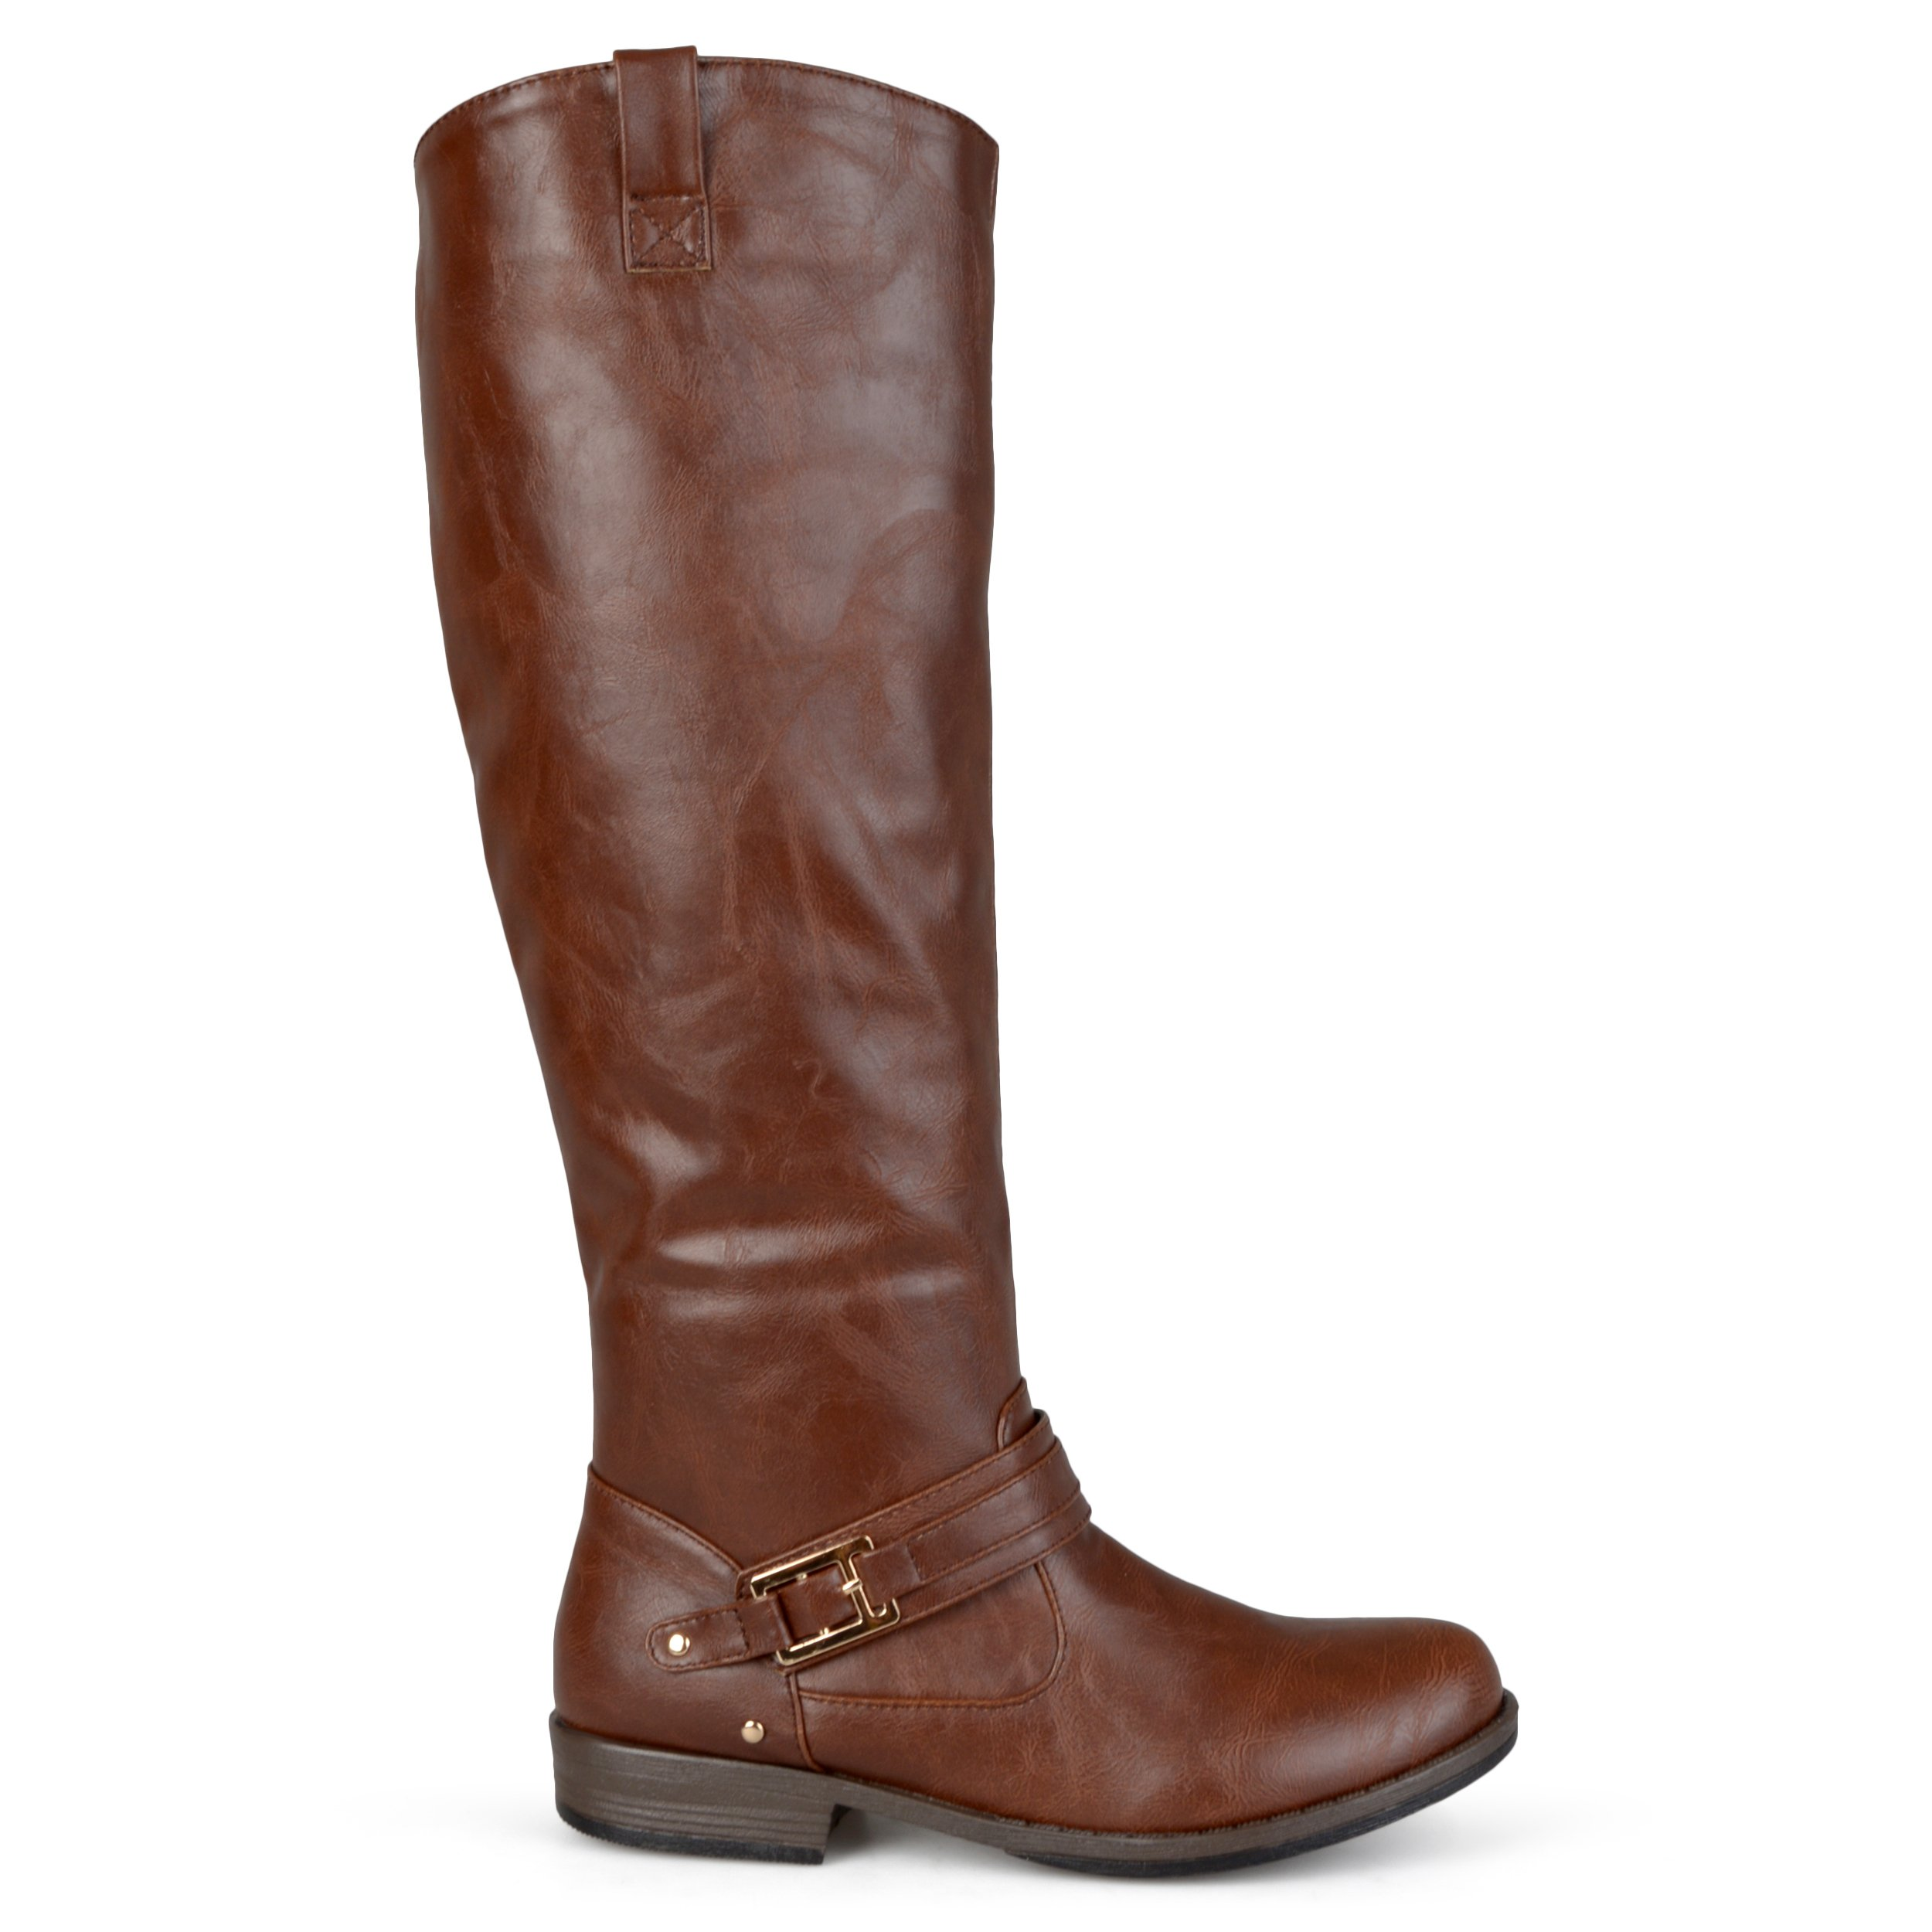 Brinley Co Women's Blaire WC Riding Boot, Brown Wide, 10 M US